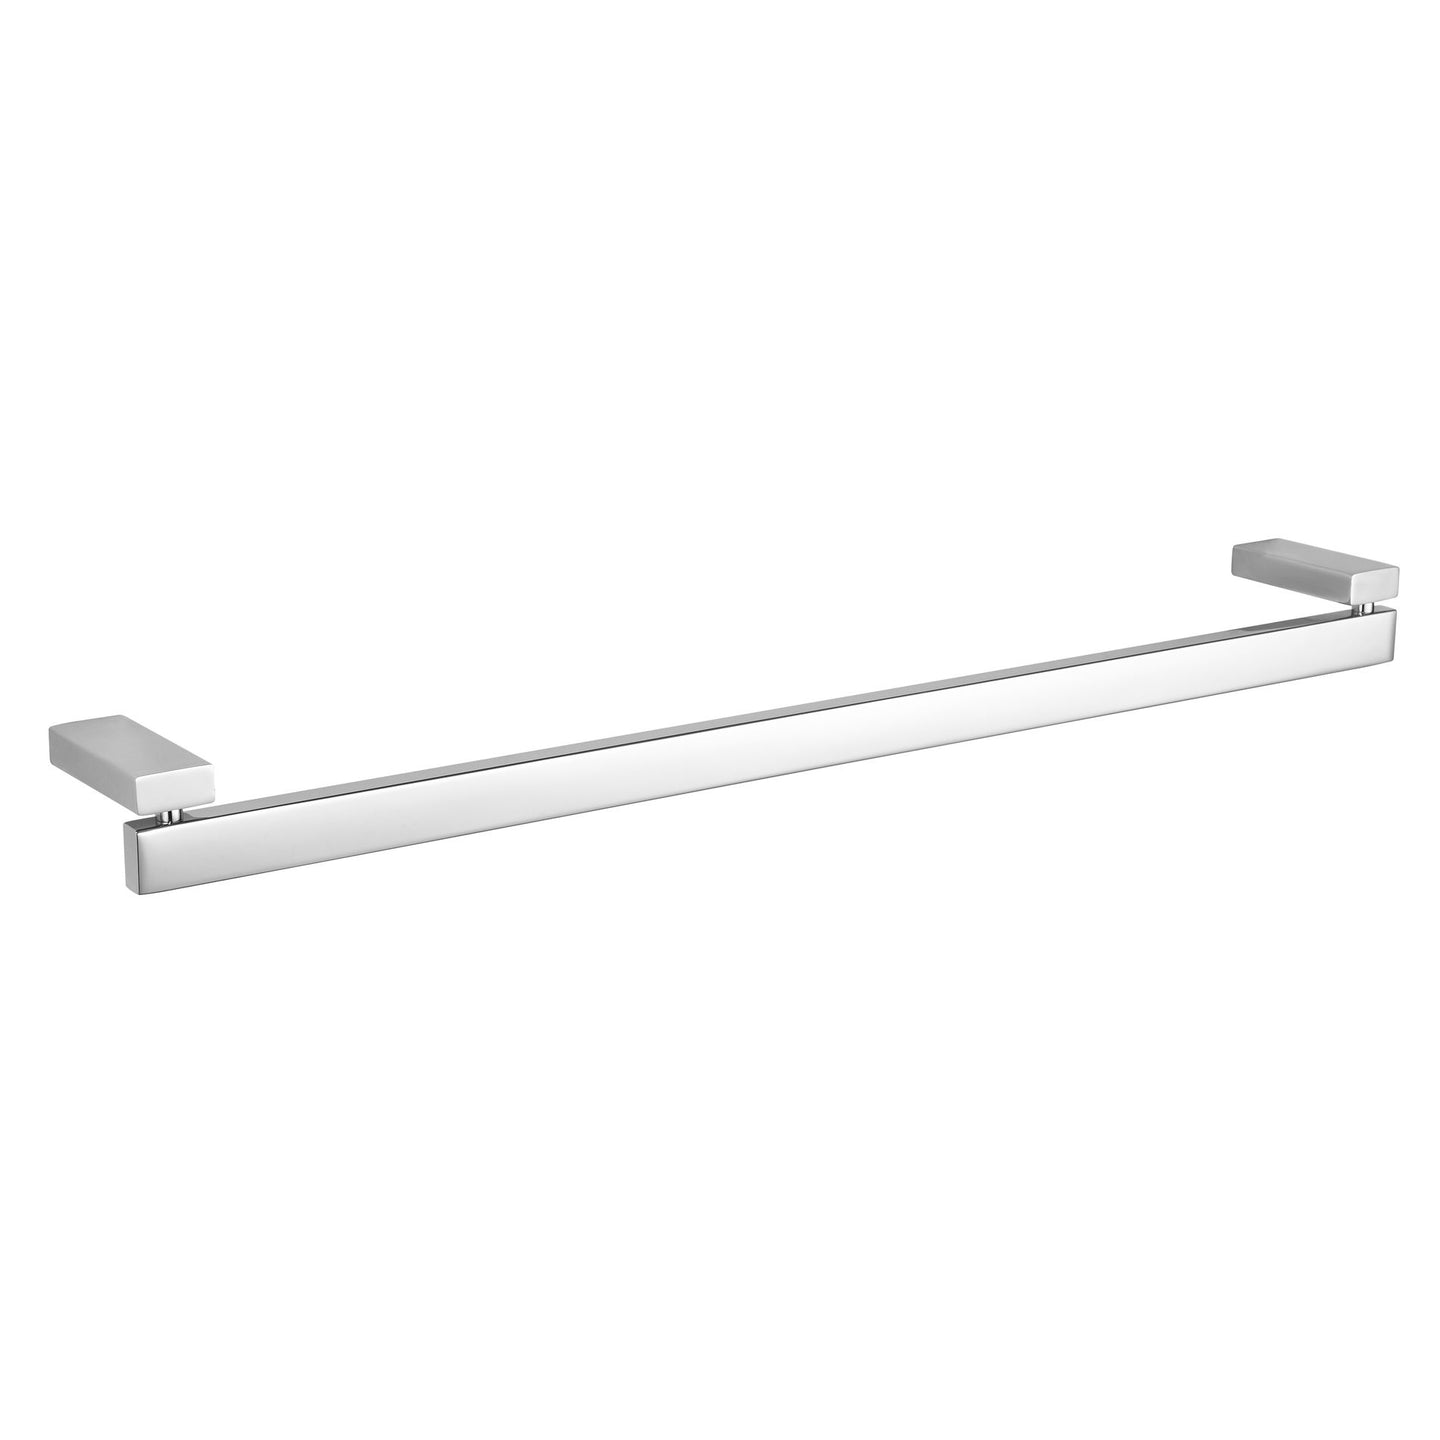 Enzo Contemporary Stainless Steel Towel Bar, Chrome